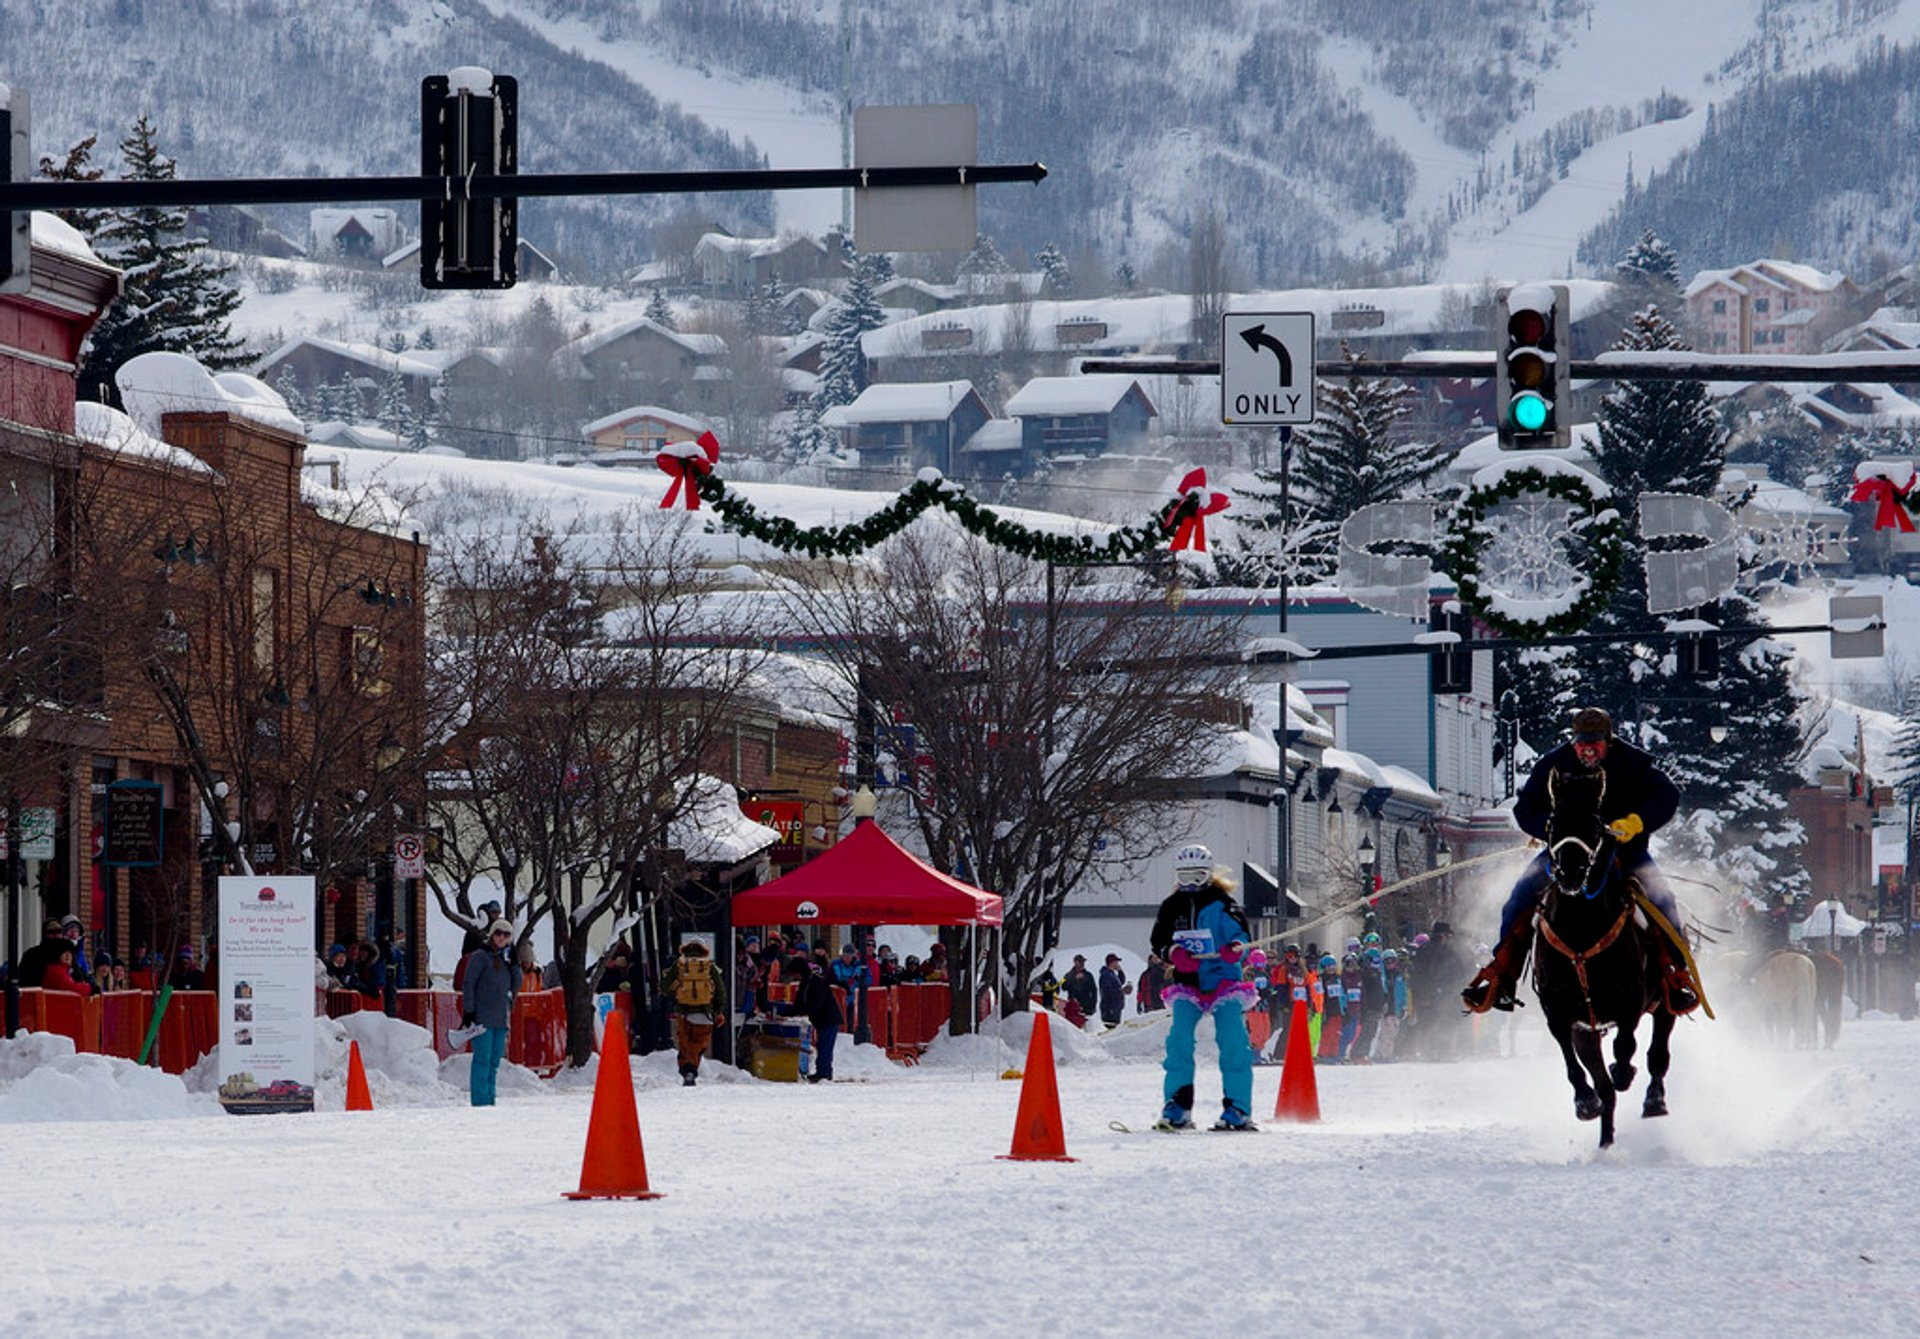 Steamboat Winter Carnival in Colorado - Best Season 2020